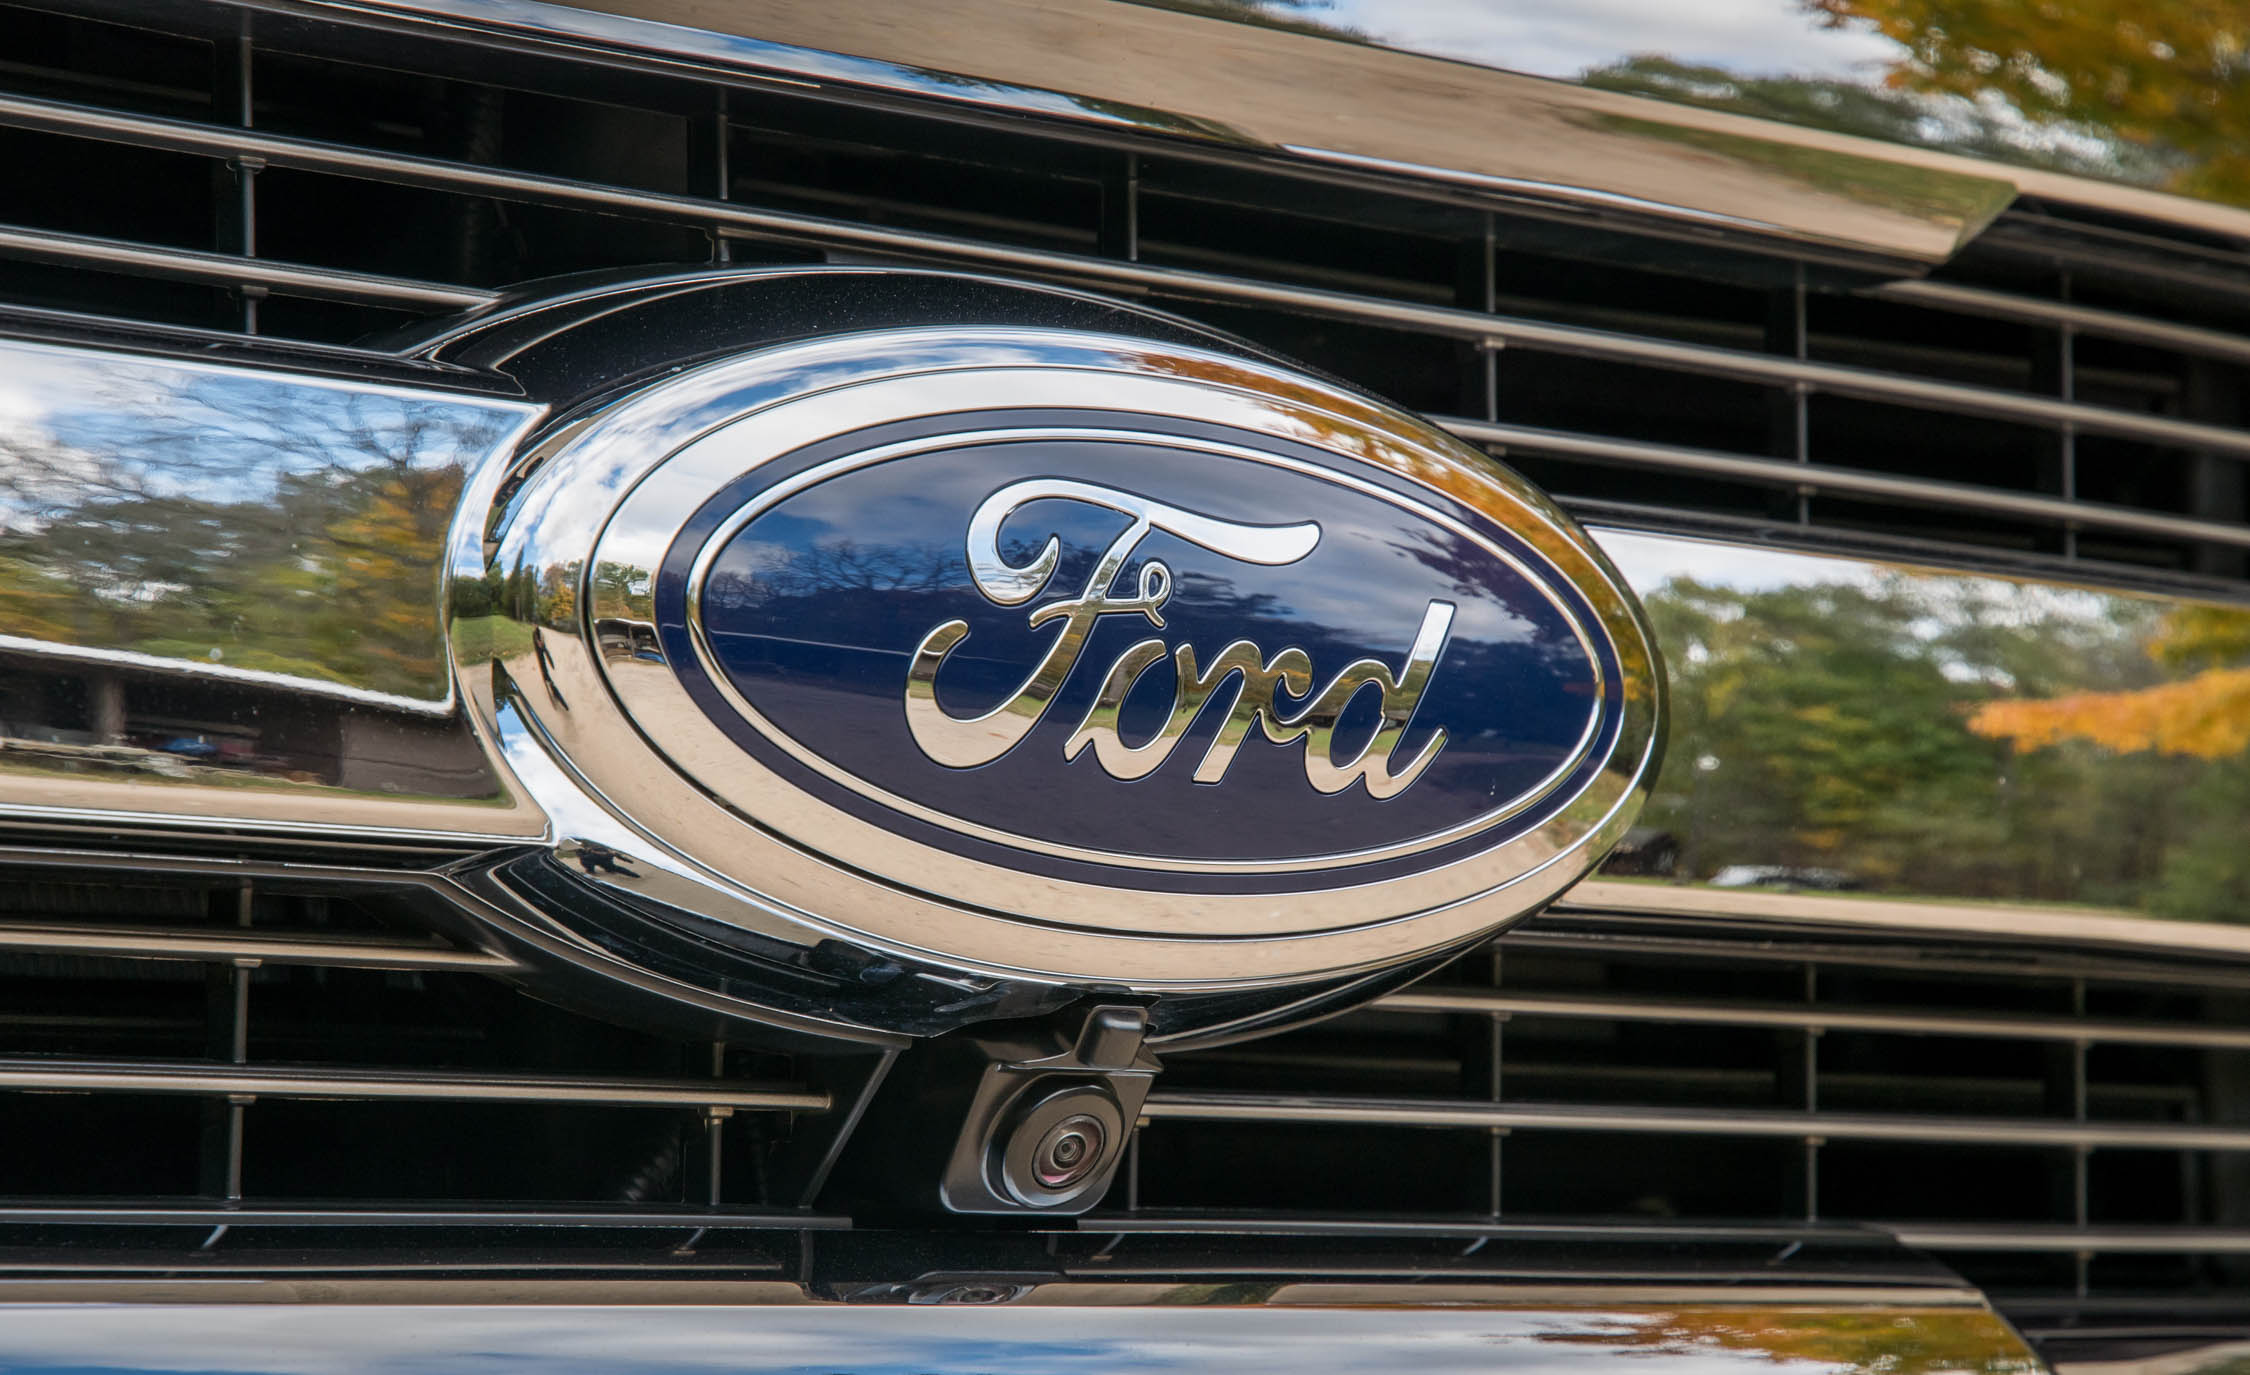 2017 Ford F 150 King Ranch Exterior View Front Badge (Photo 11 of 50)